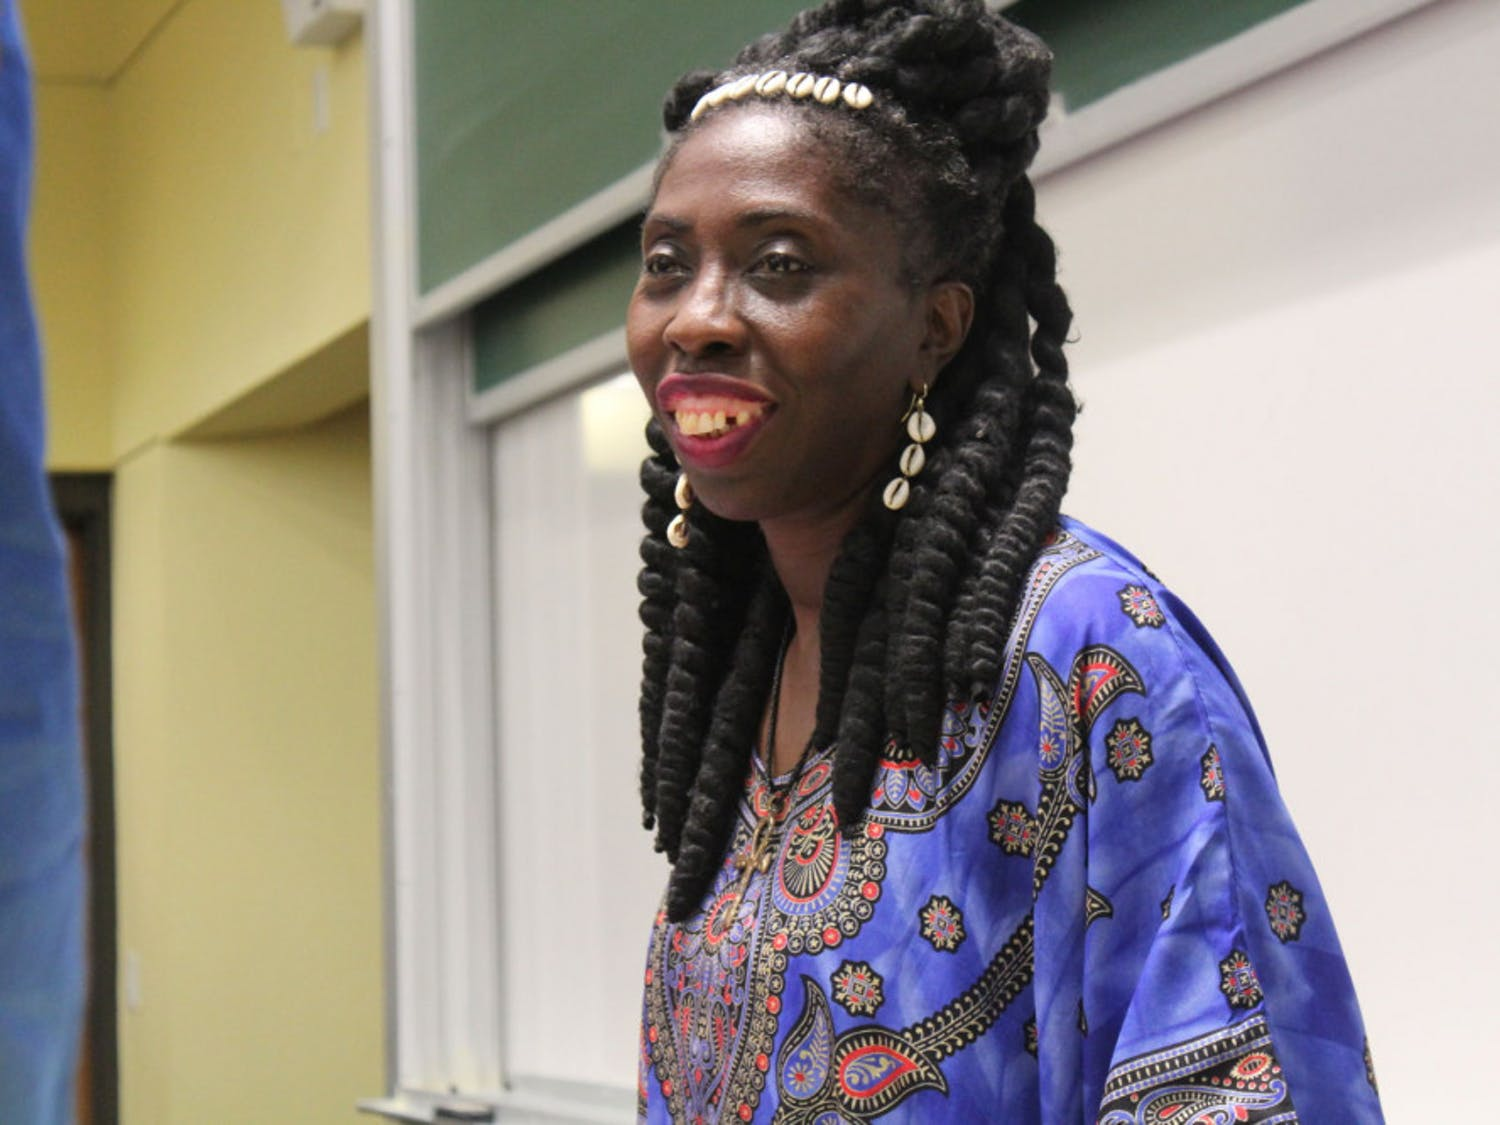 Queen Quet, the chieftess and head of state of the Gullah Geechee nation, talked with attendees after her speech at UF Tuesday night. She is from Saint Helena Island in South Carolina.